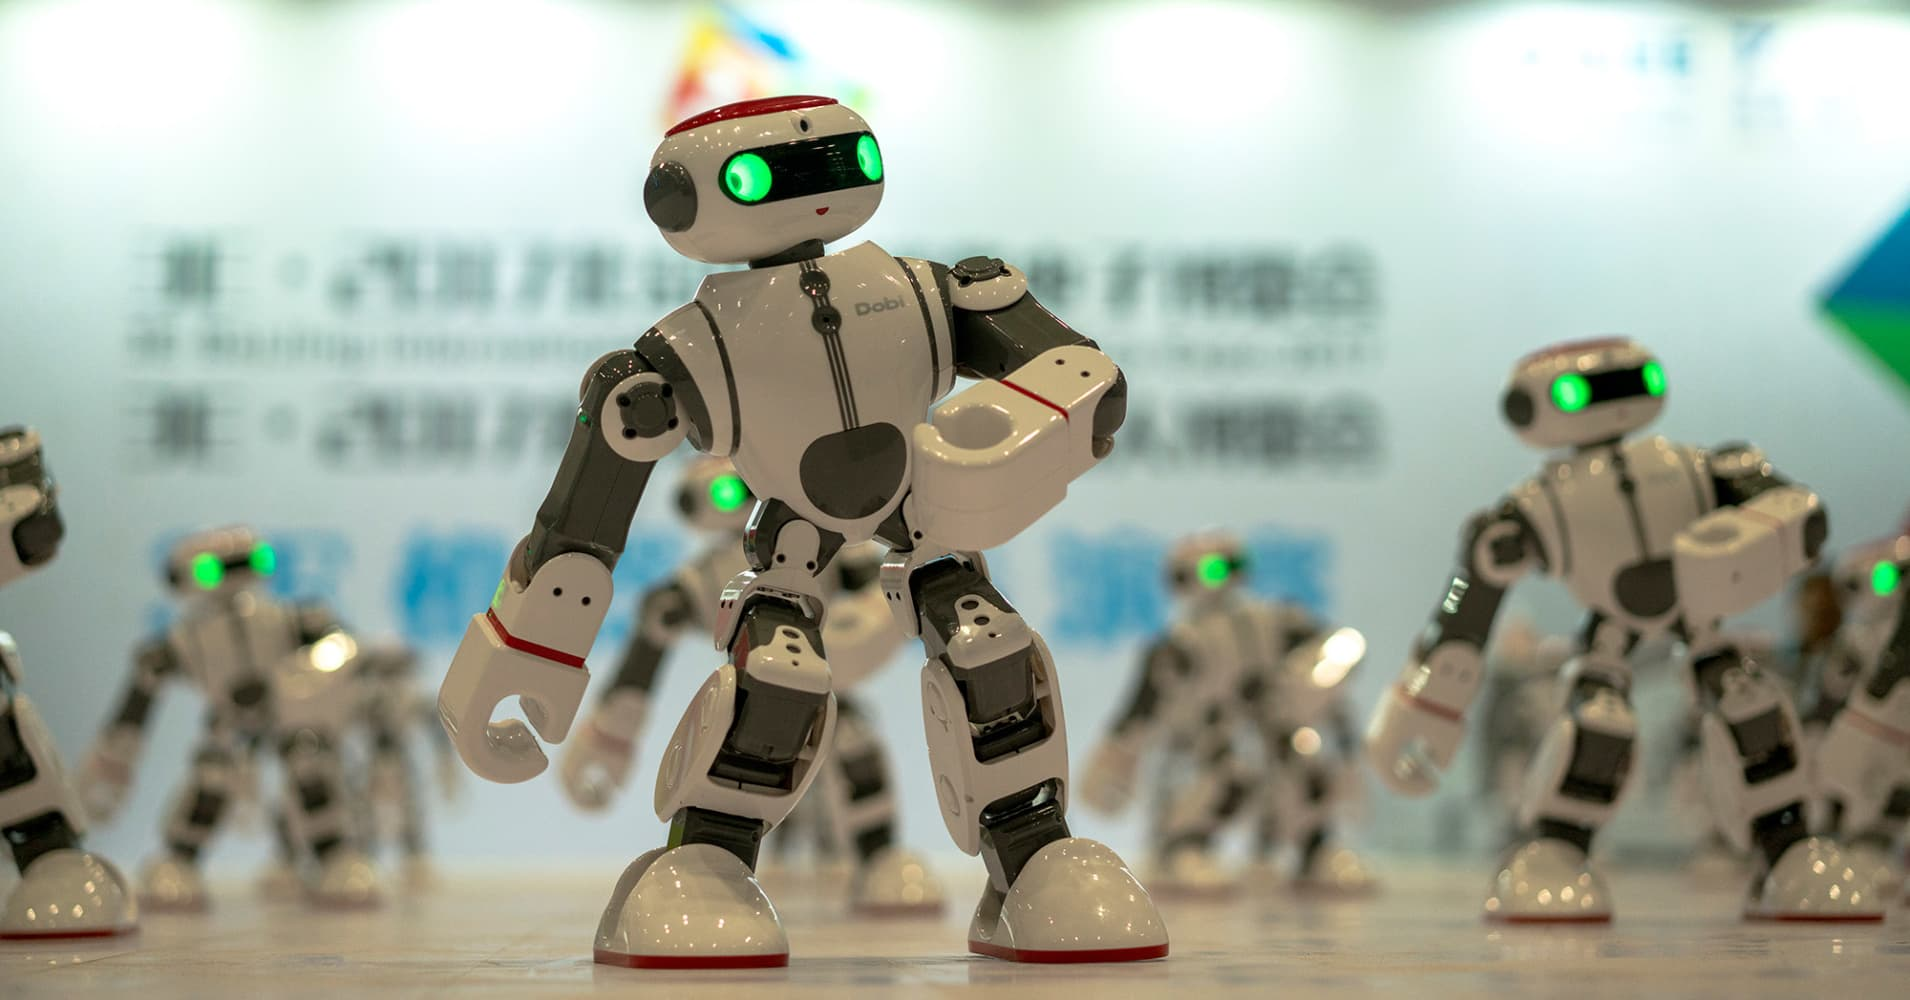 Why China is spending billions to develop an army of robots to turbocharge its economy